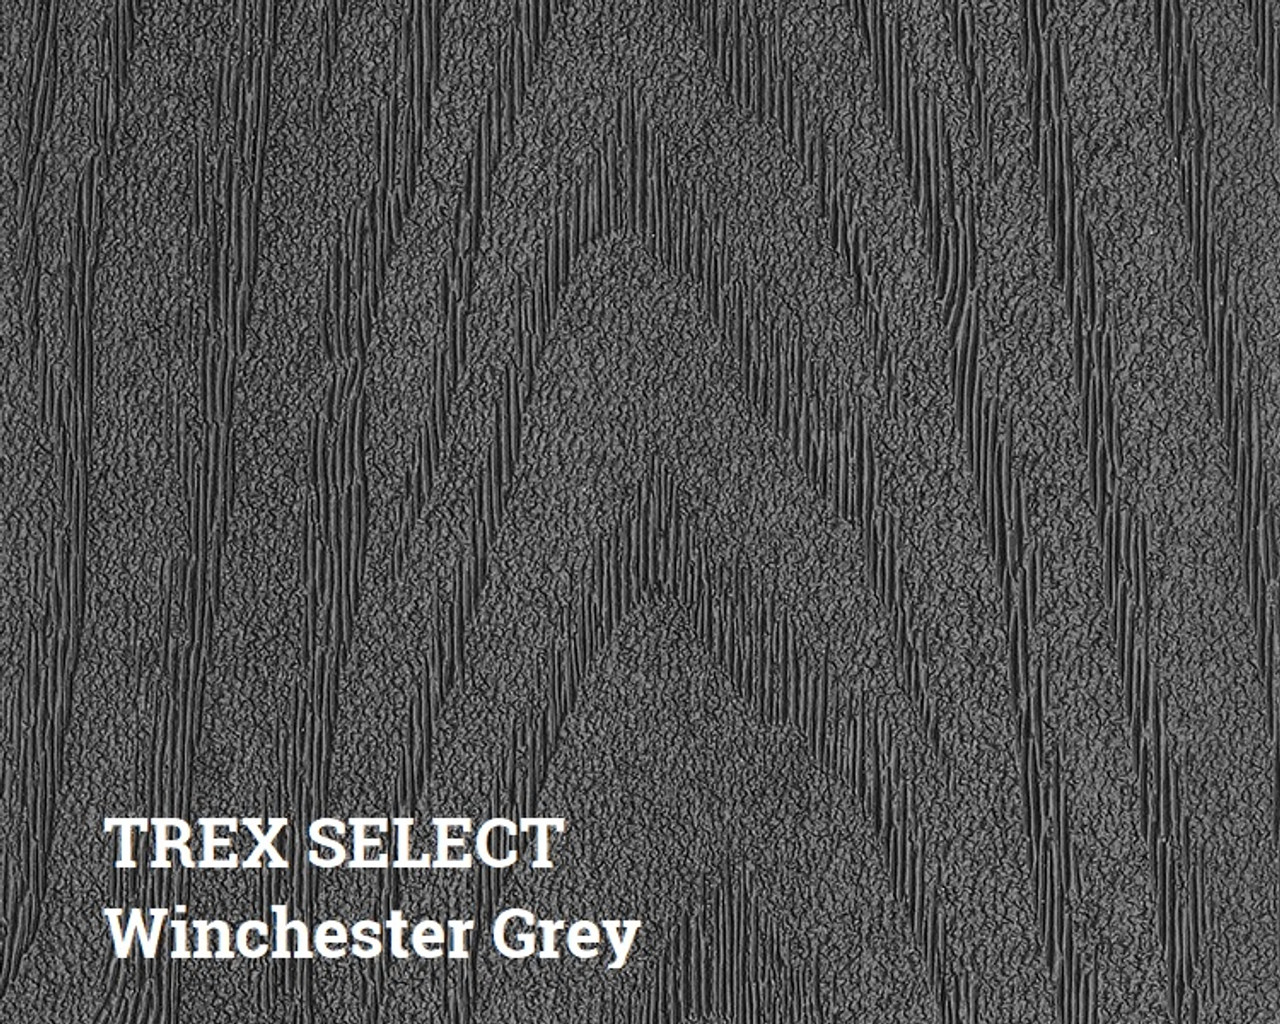 Trex Select Winchester Grey Decking Surface